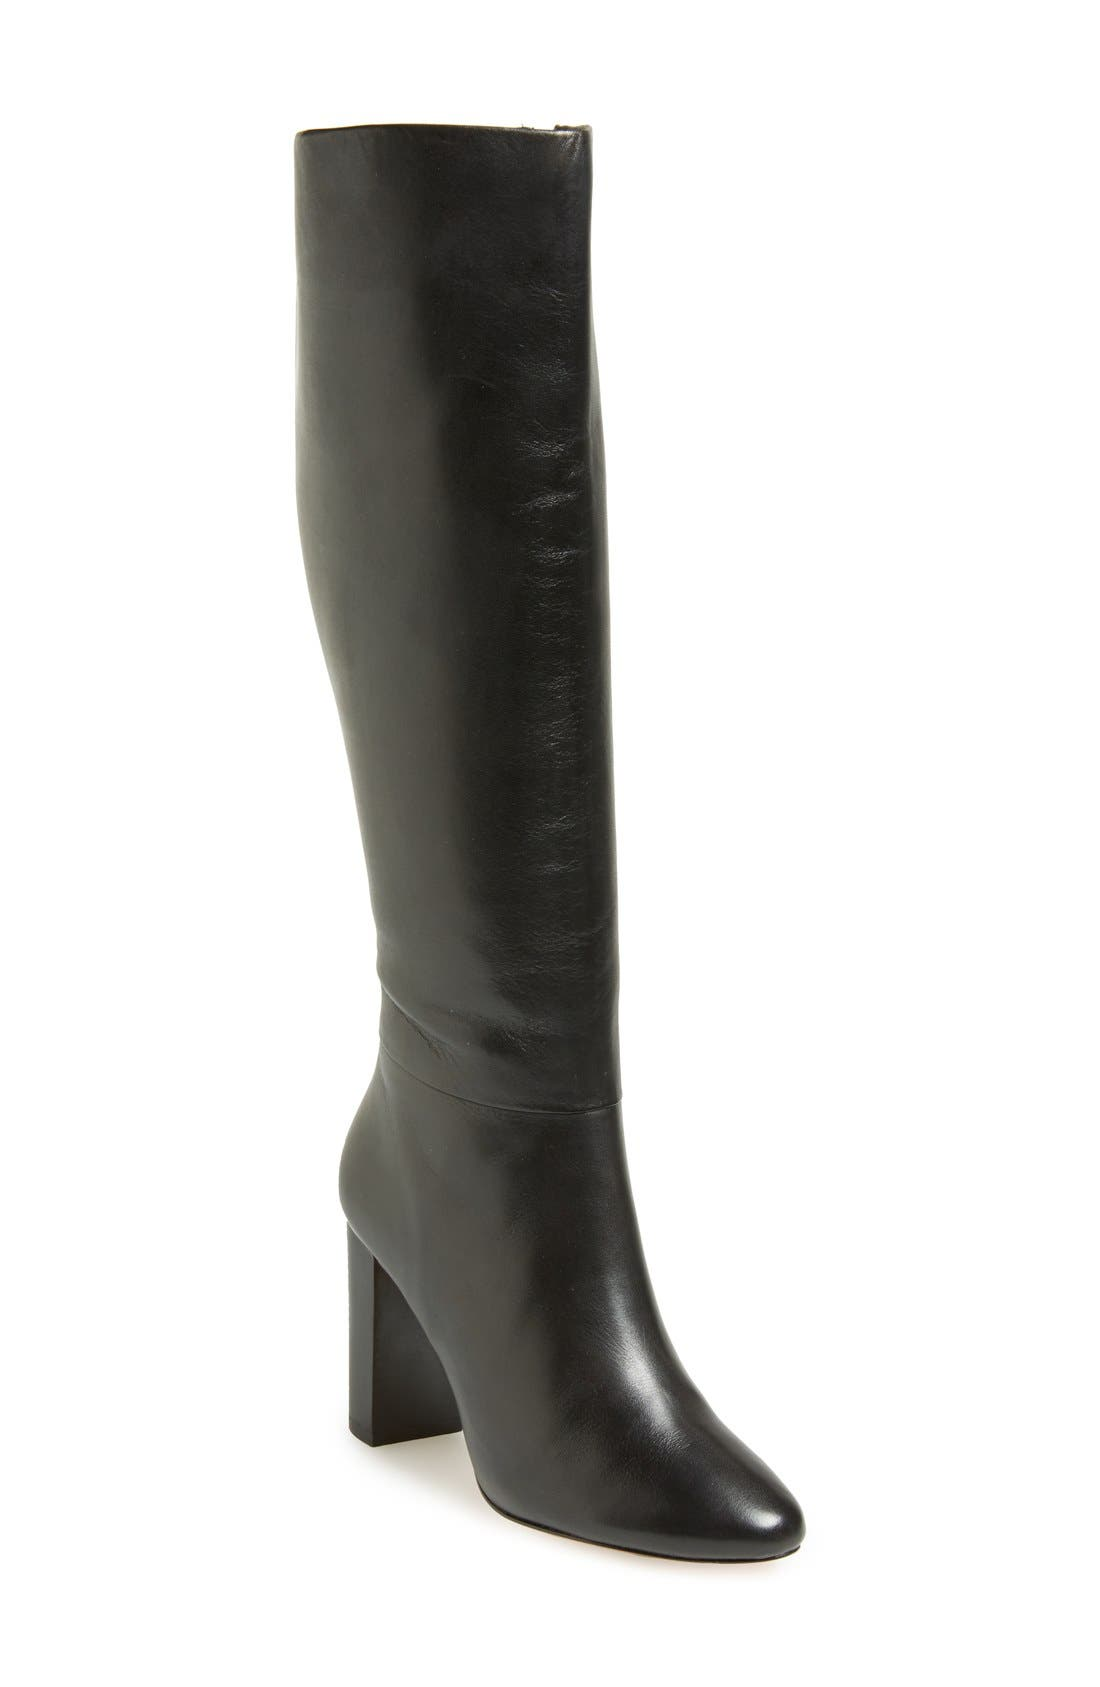 Main Image - Ted Baker London 'Lothari' Knee High Leather Boot (Women)